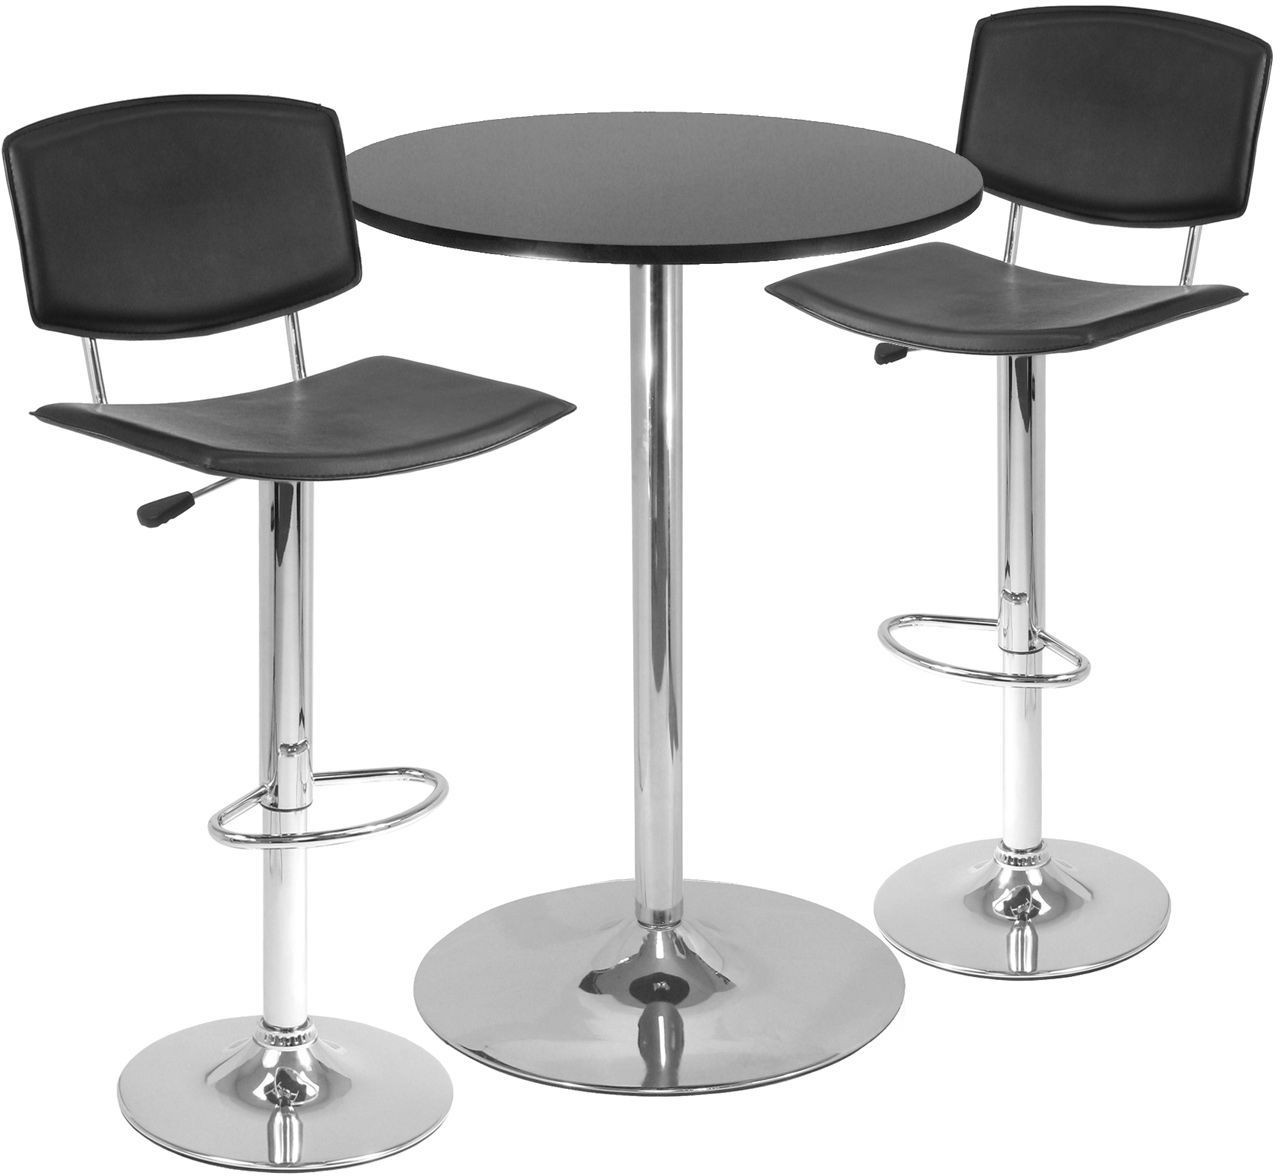 Spectrum Black Curved Seat Air Lift Stool Set Of 2 From